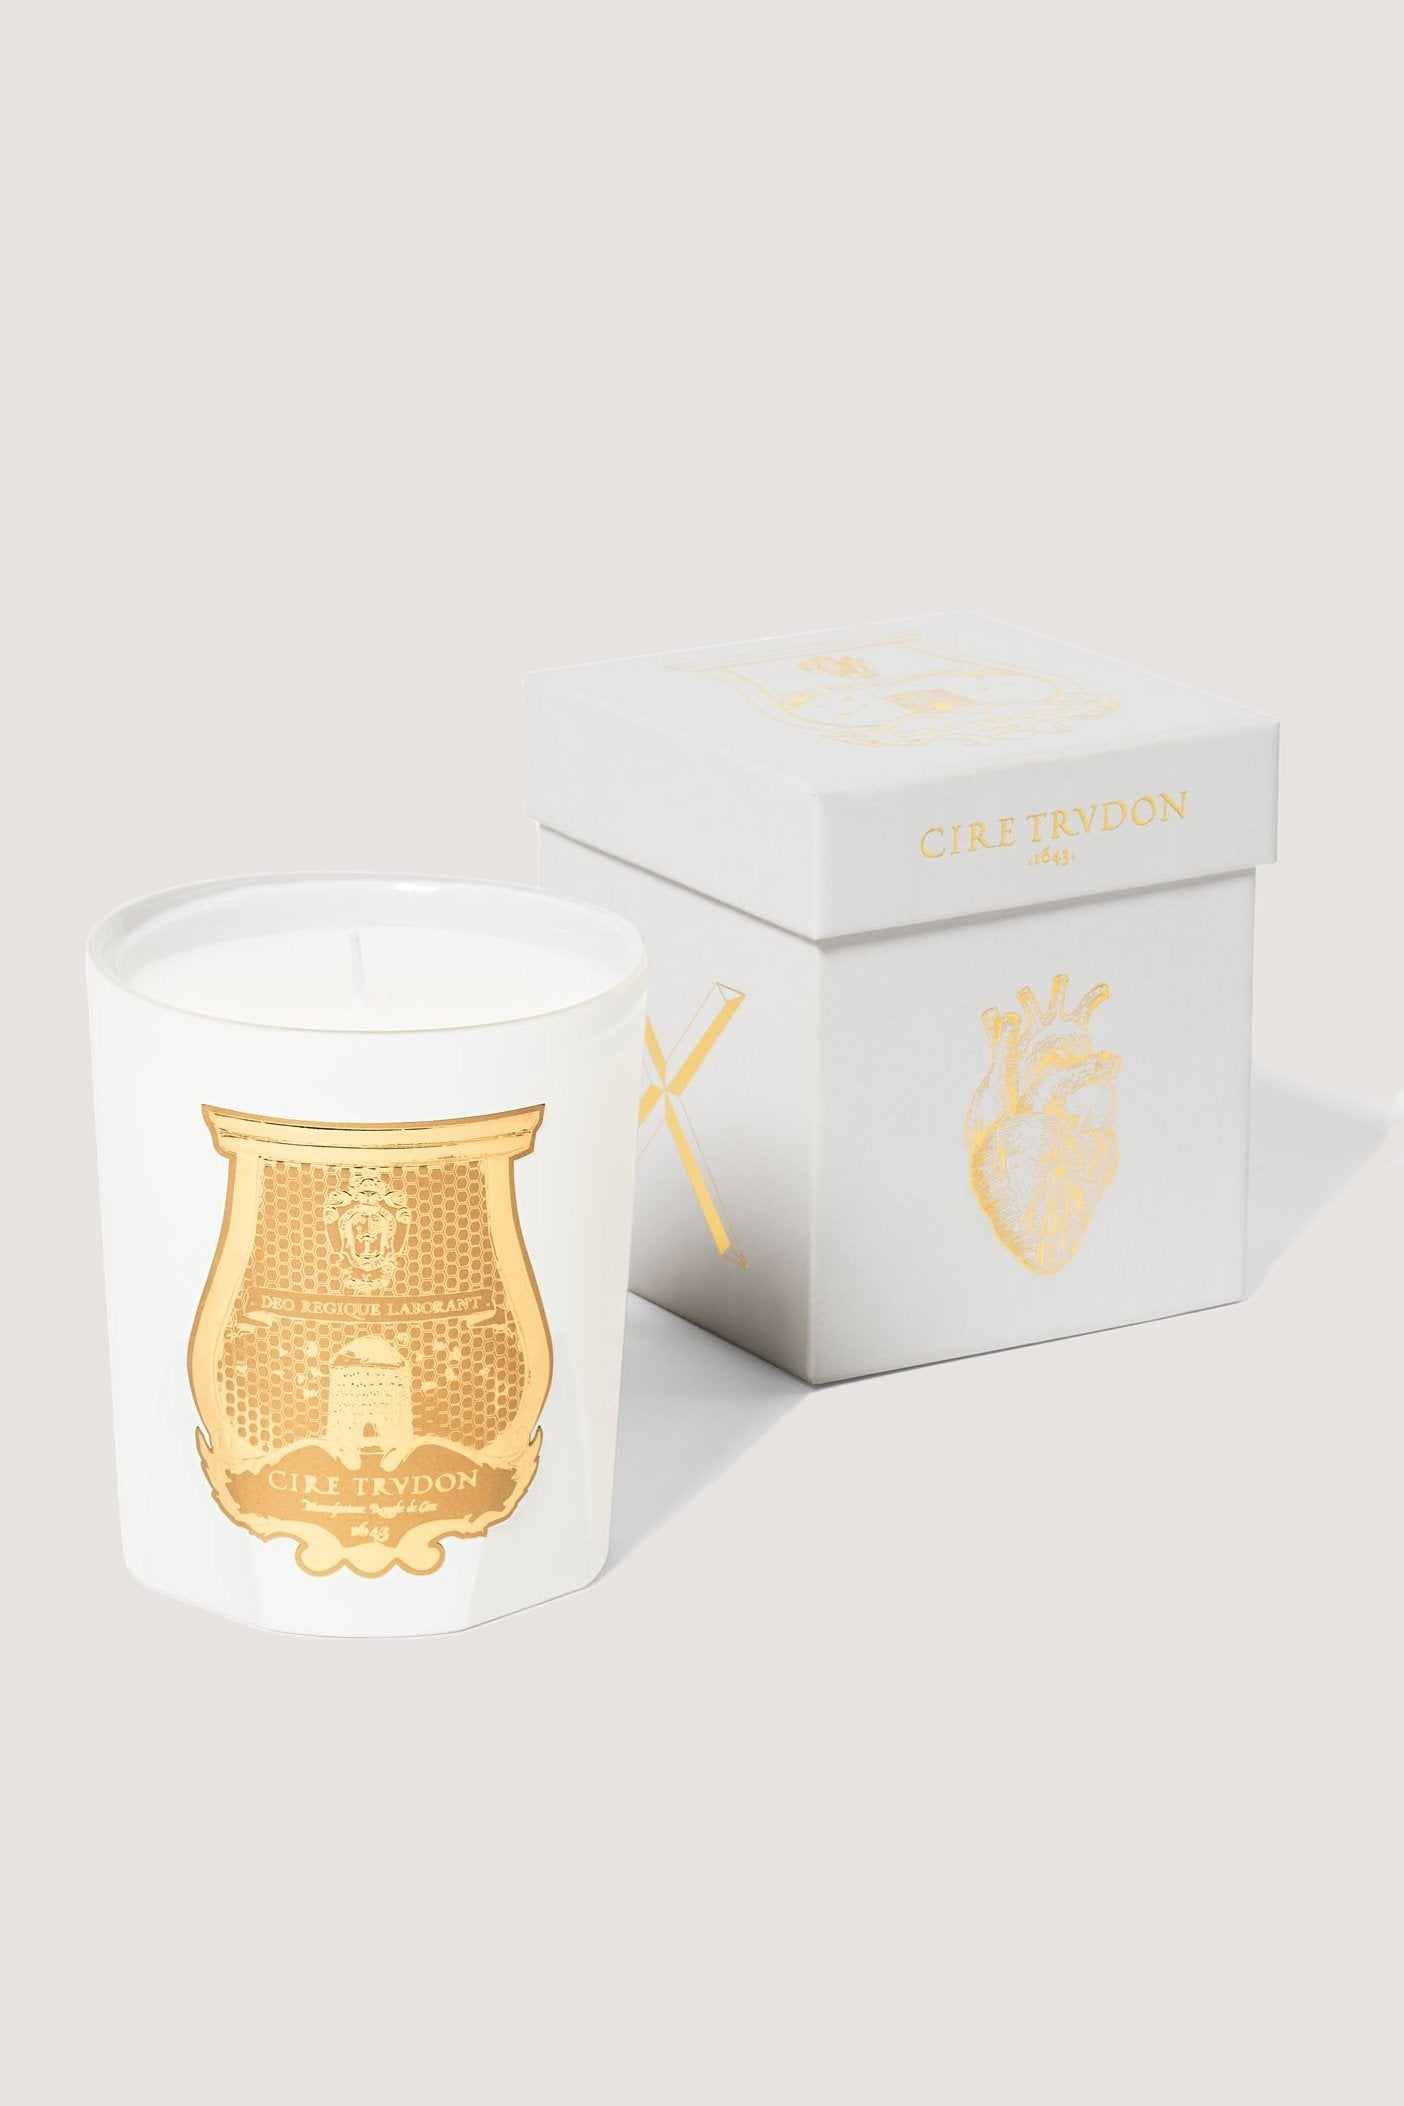 Cire Trudon - SIX, Limited Edition